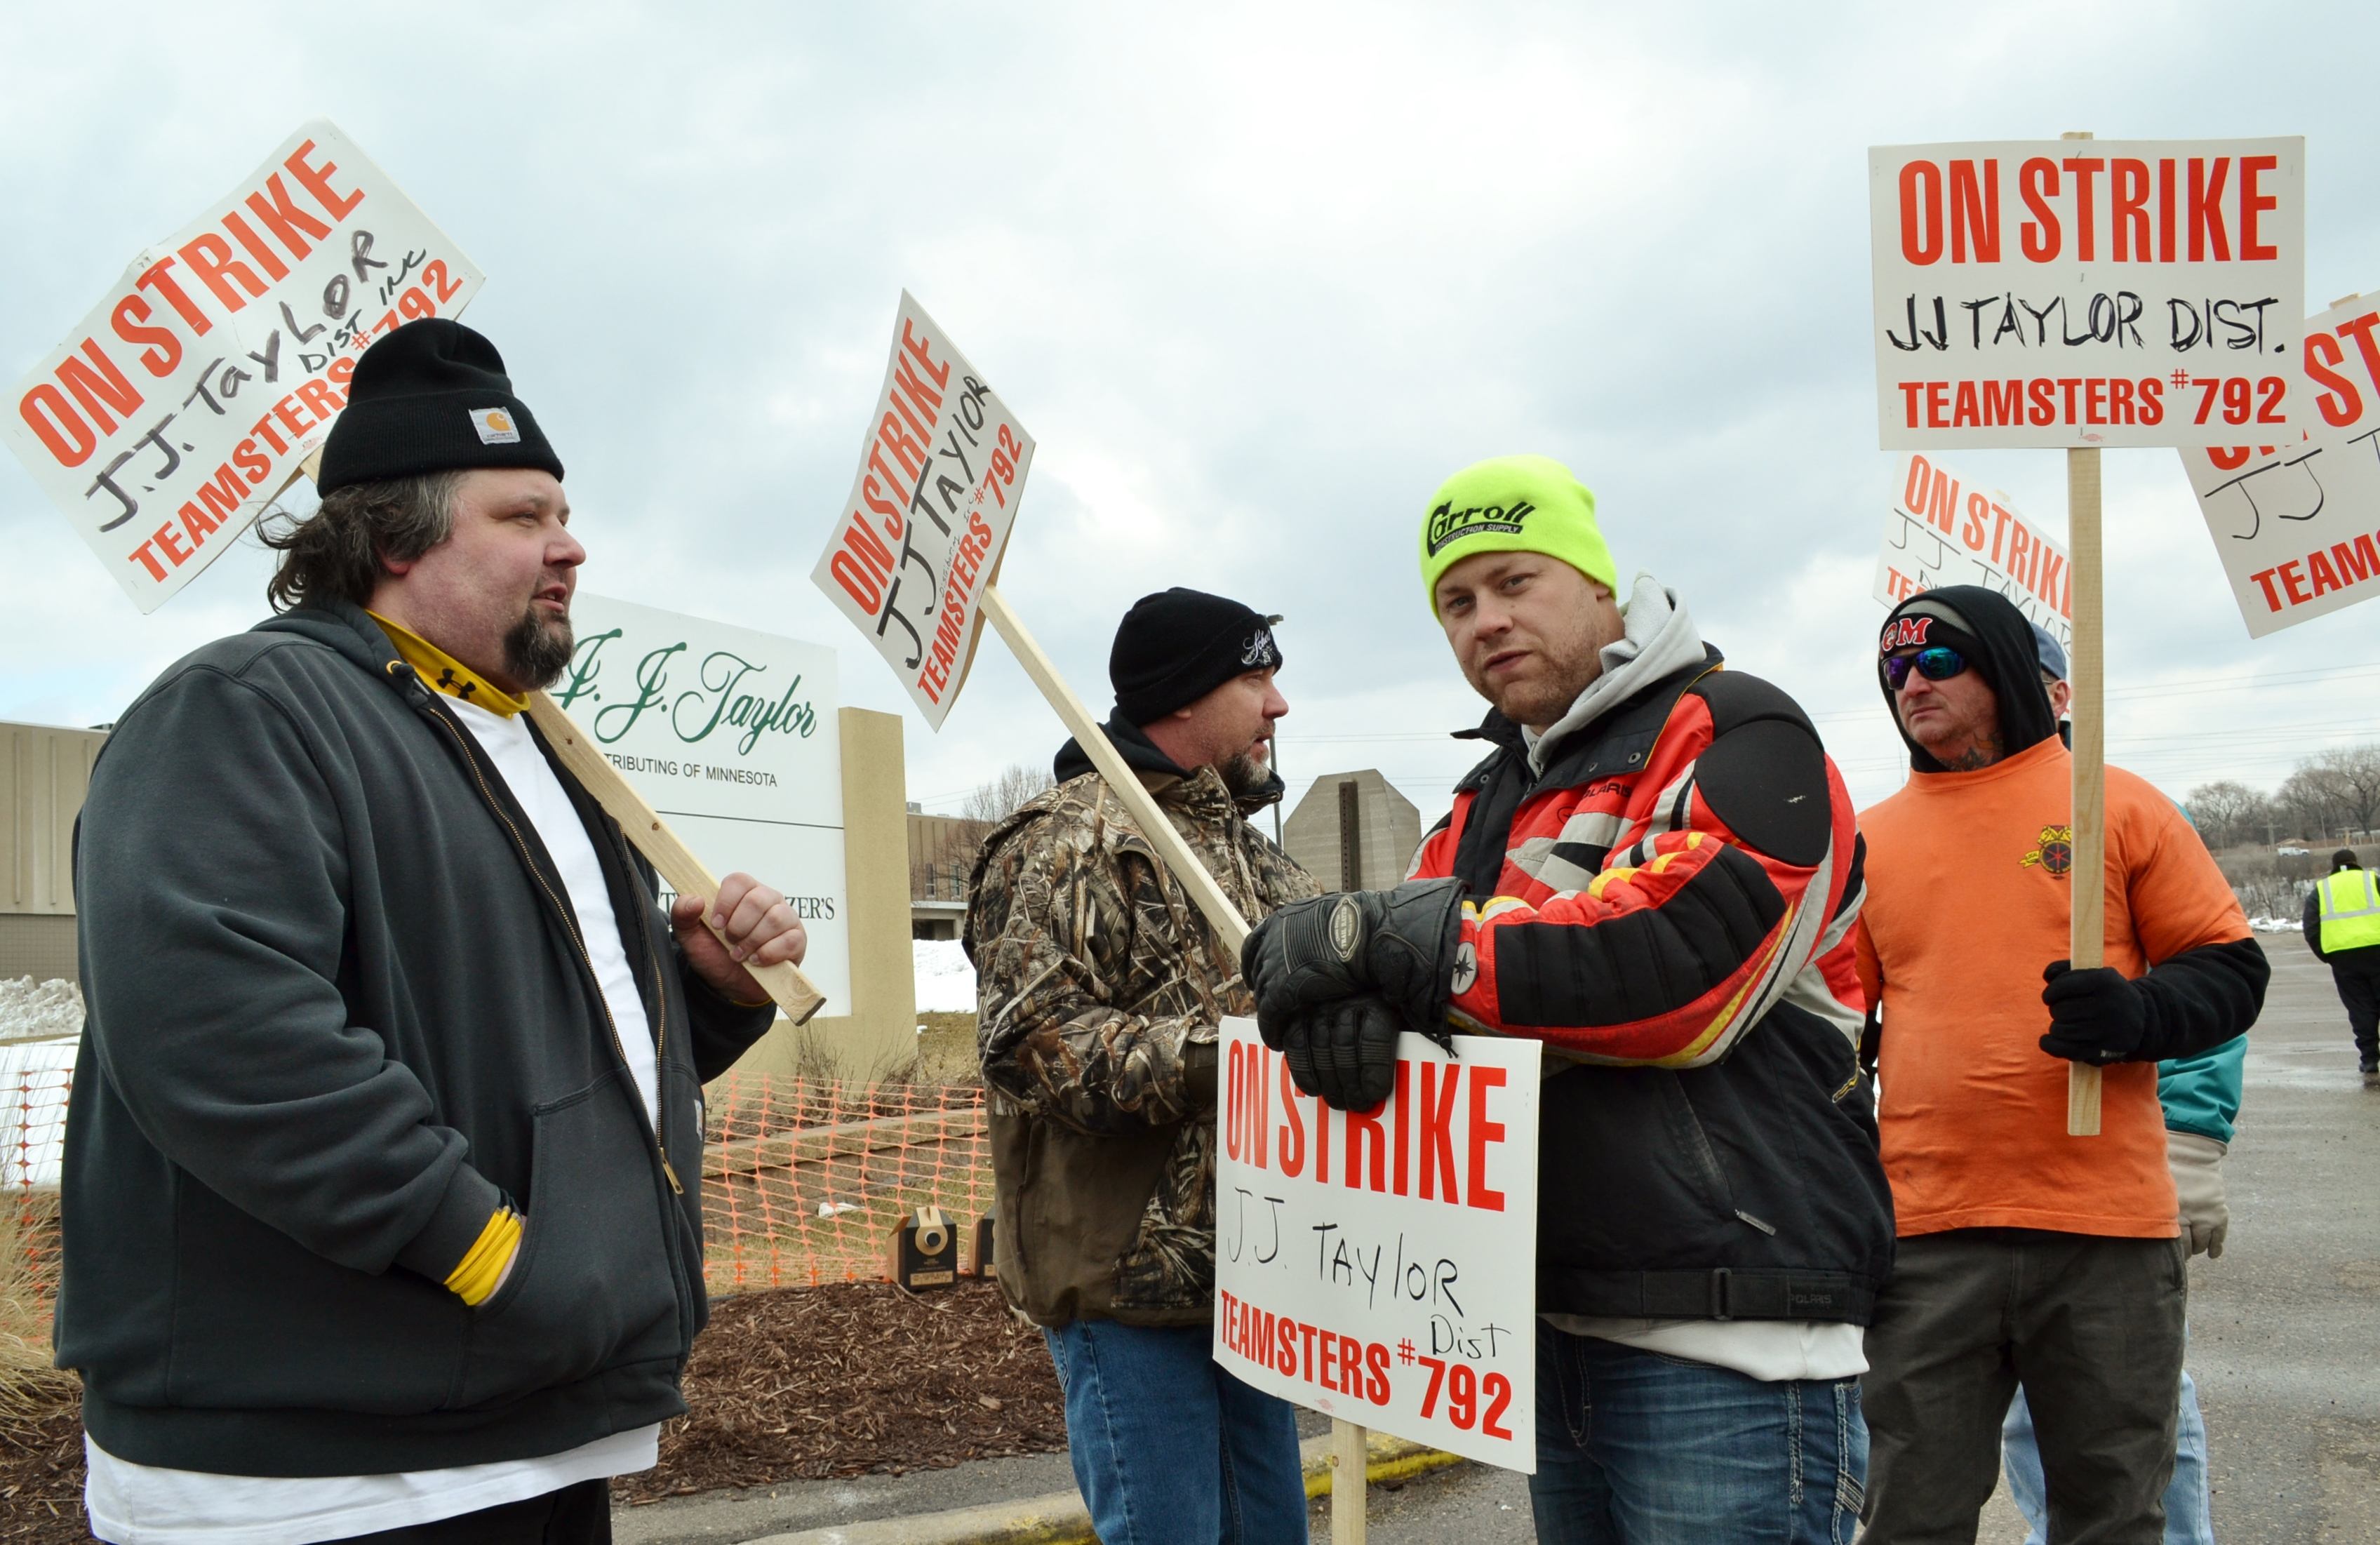 beer truck drivers strike for safe routes respect on the job